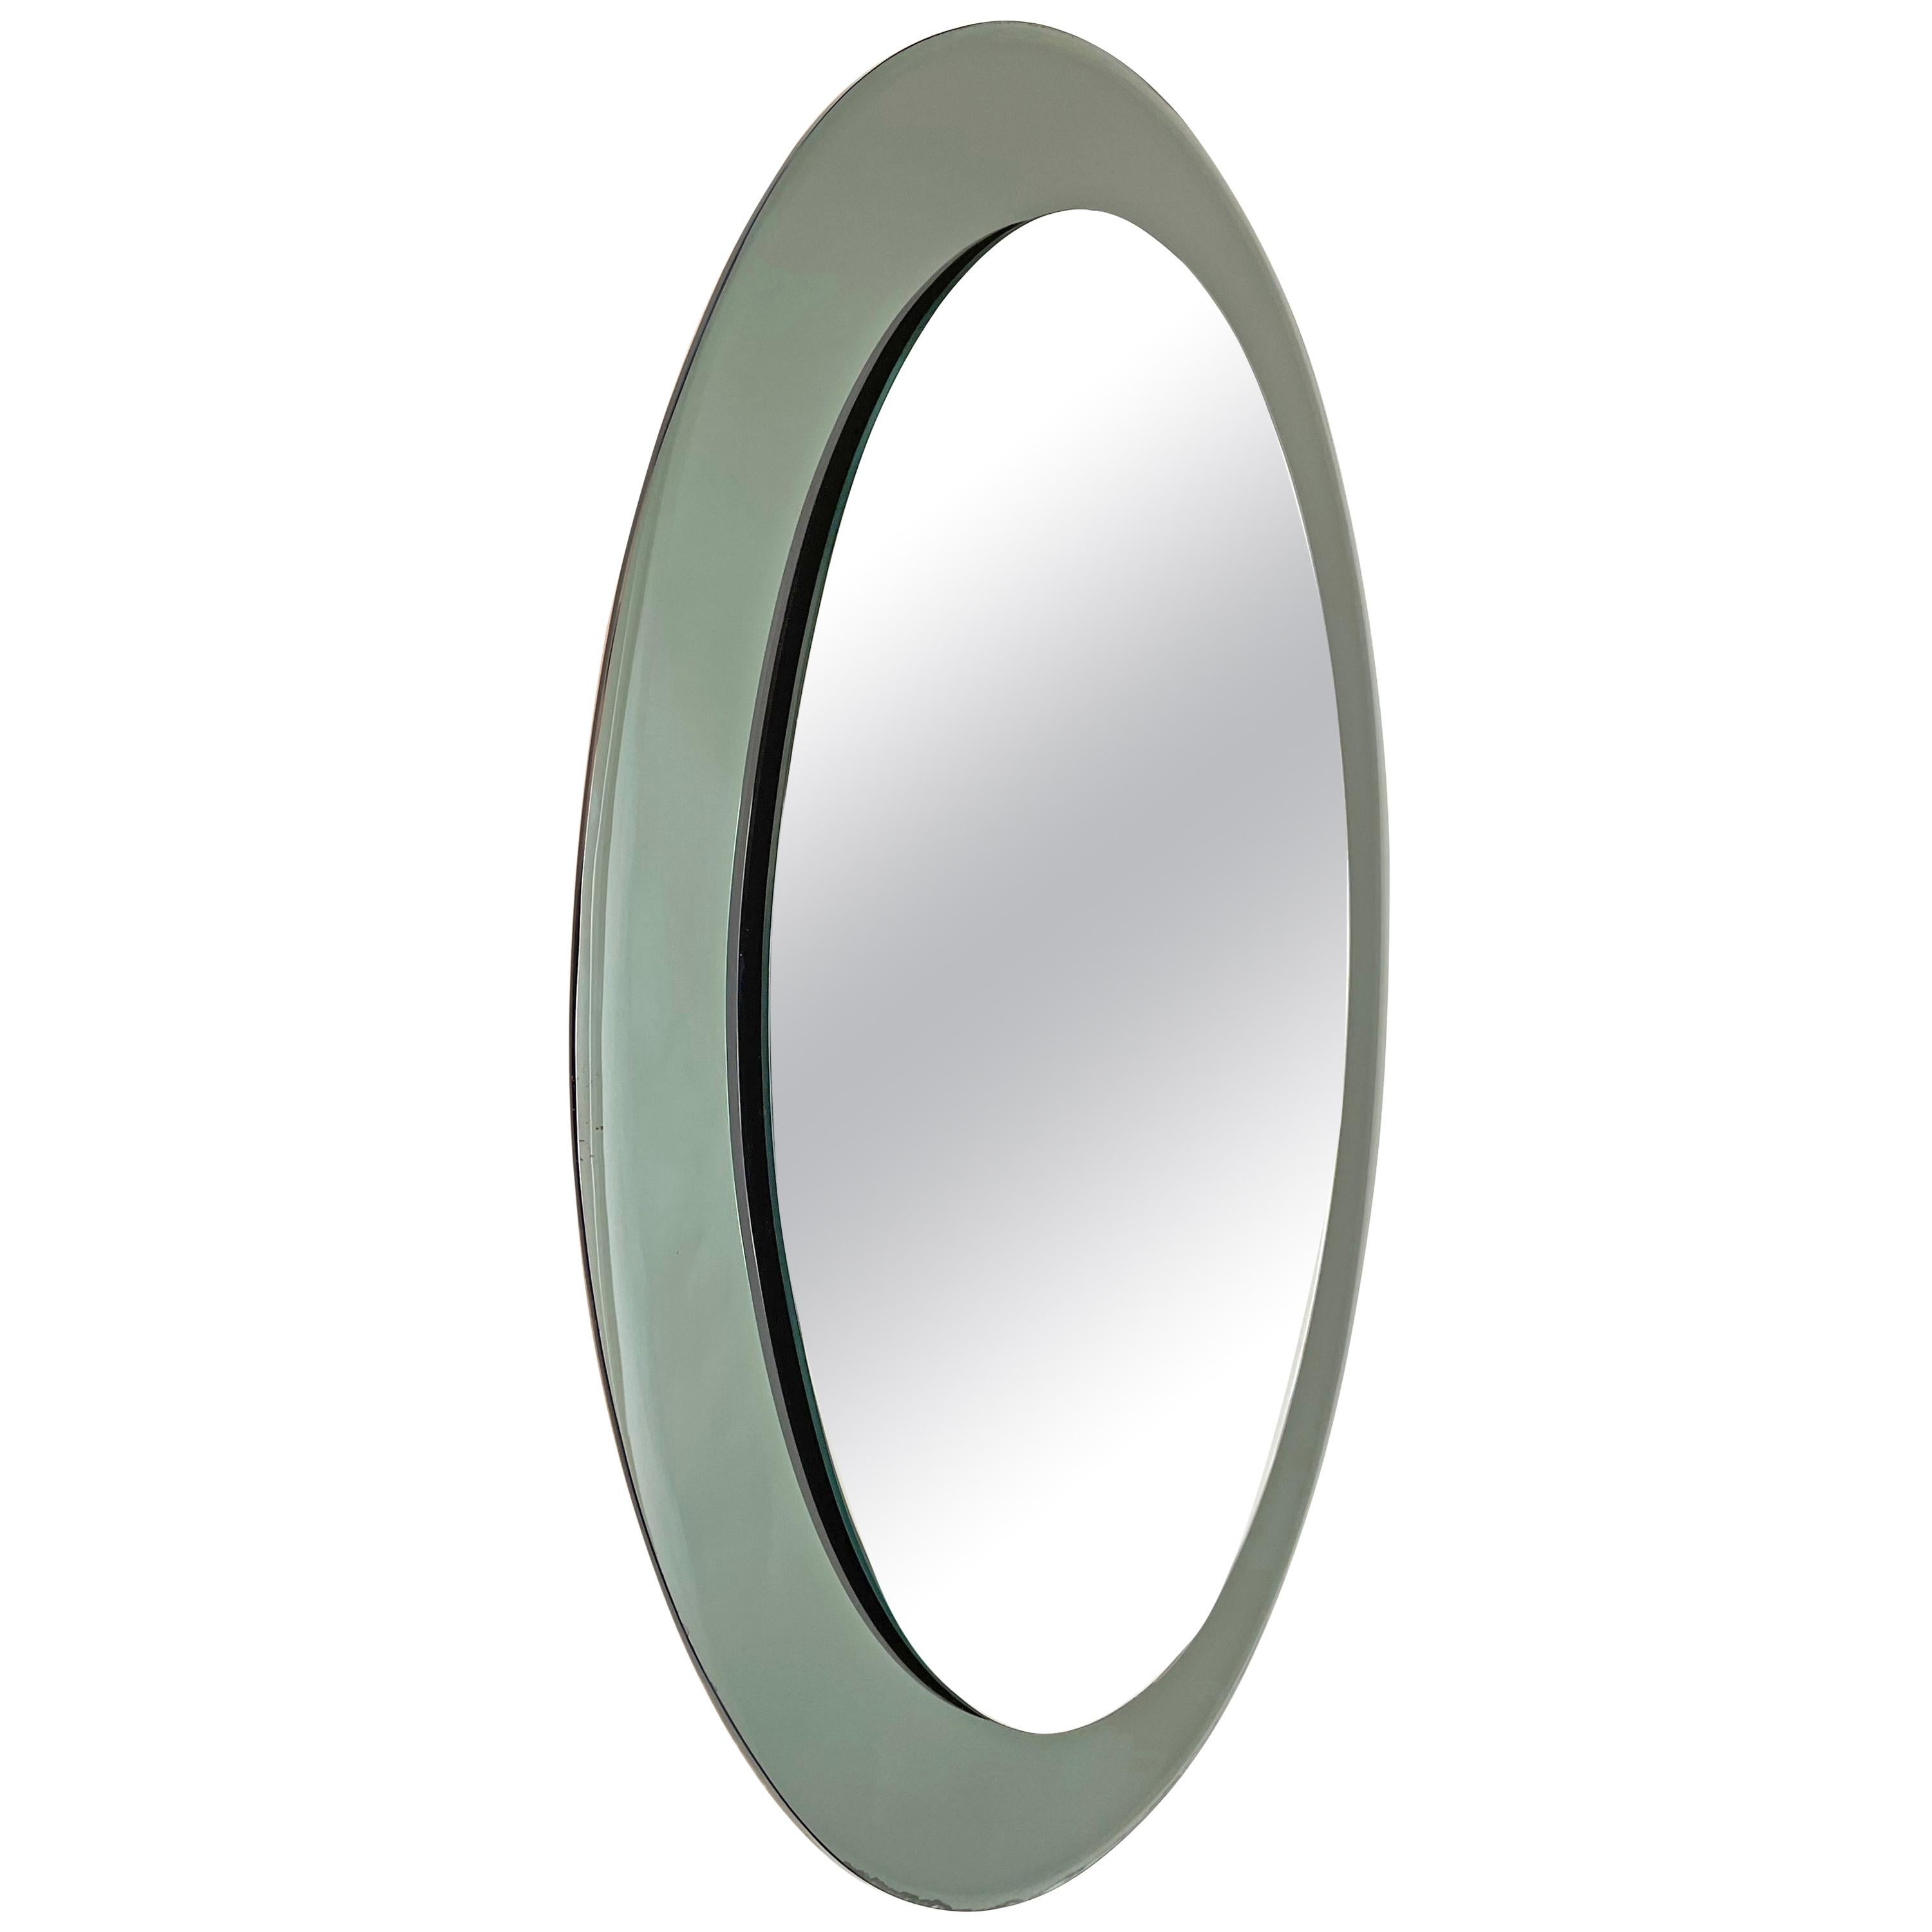 Midcentury Glass Framed Oval Wall Mirror Attributed to Cristal Art, Italy, 1960s